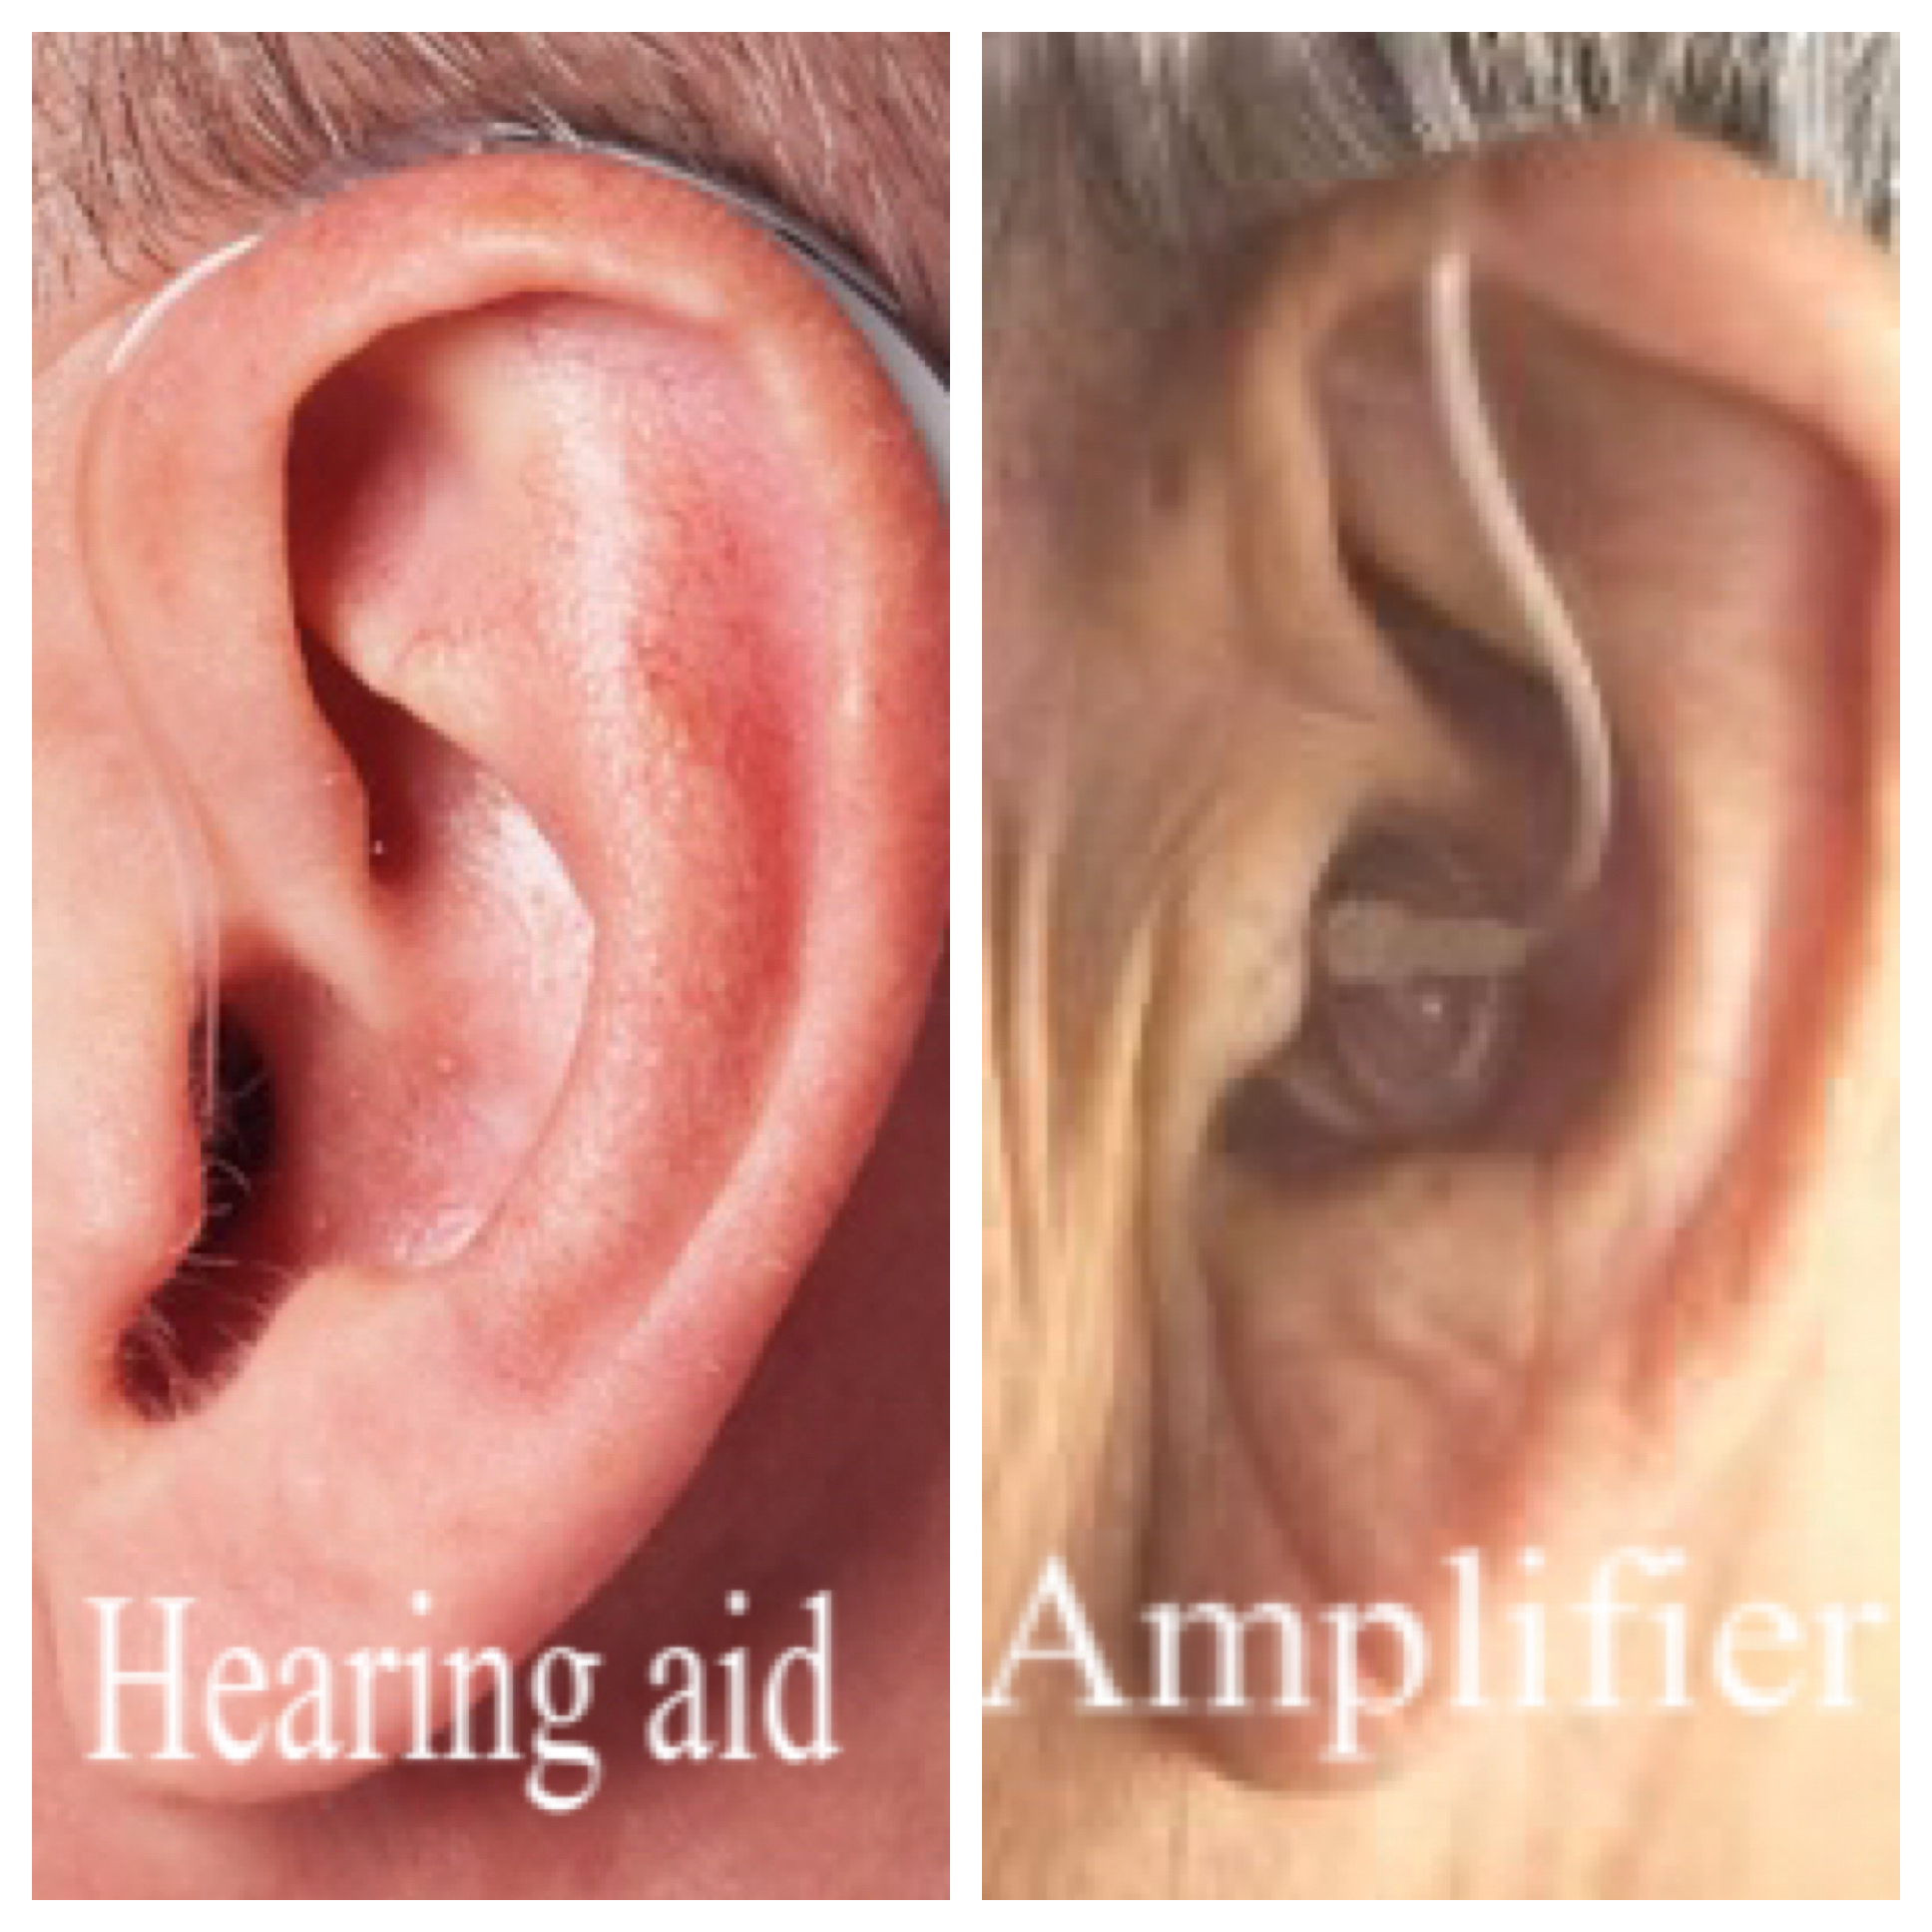 Hearing aid or psap